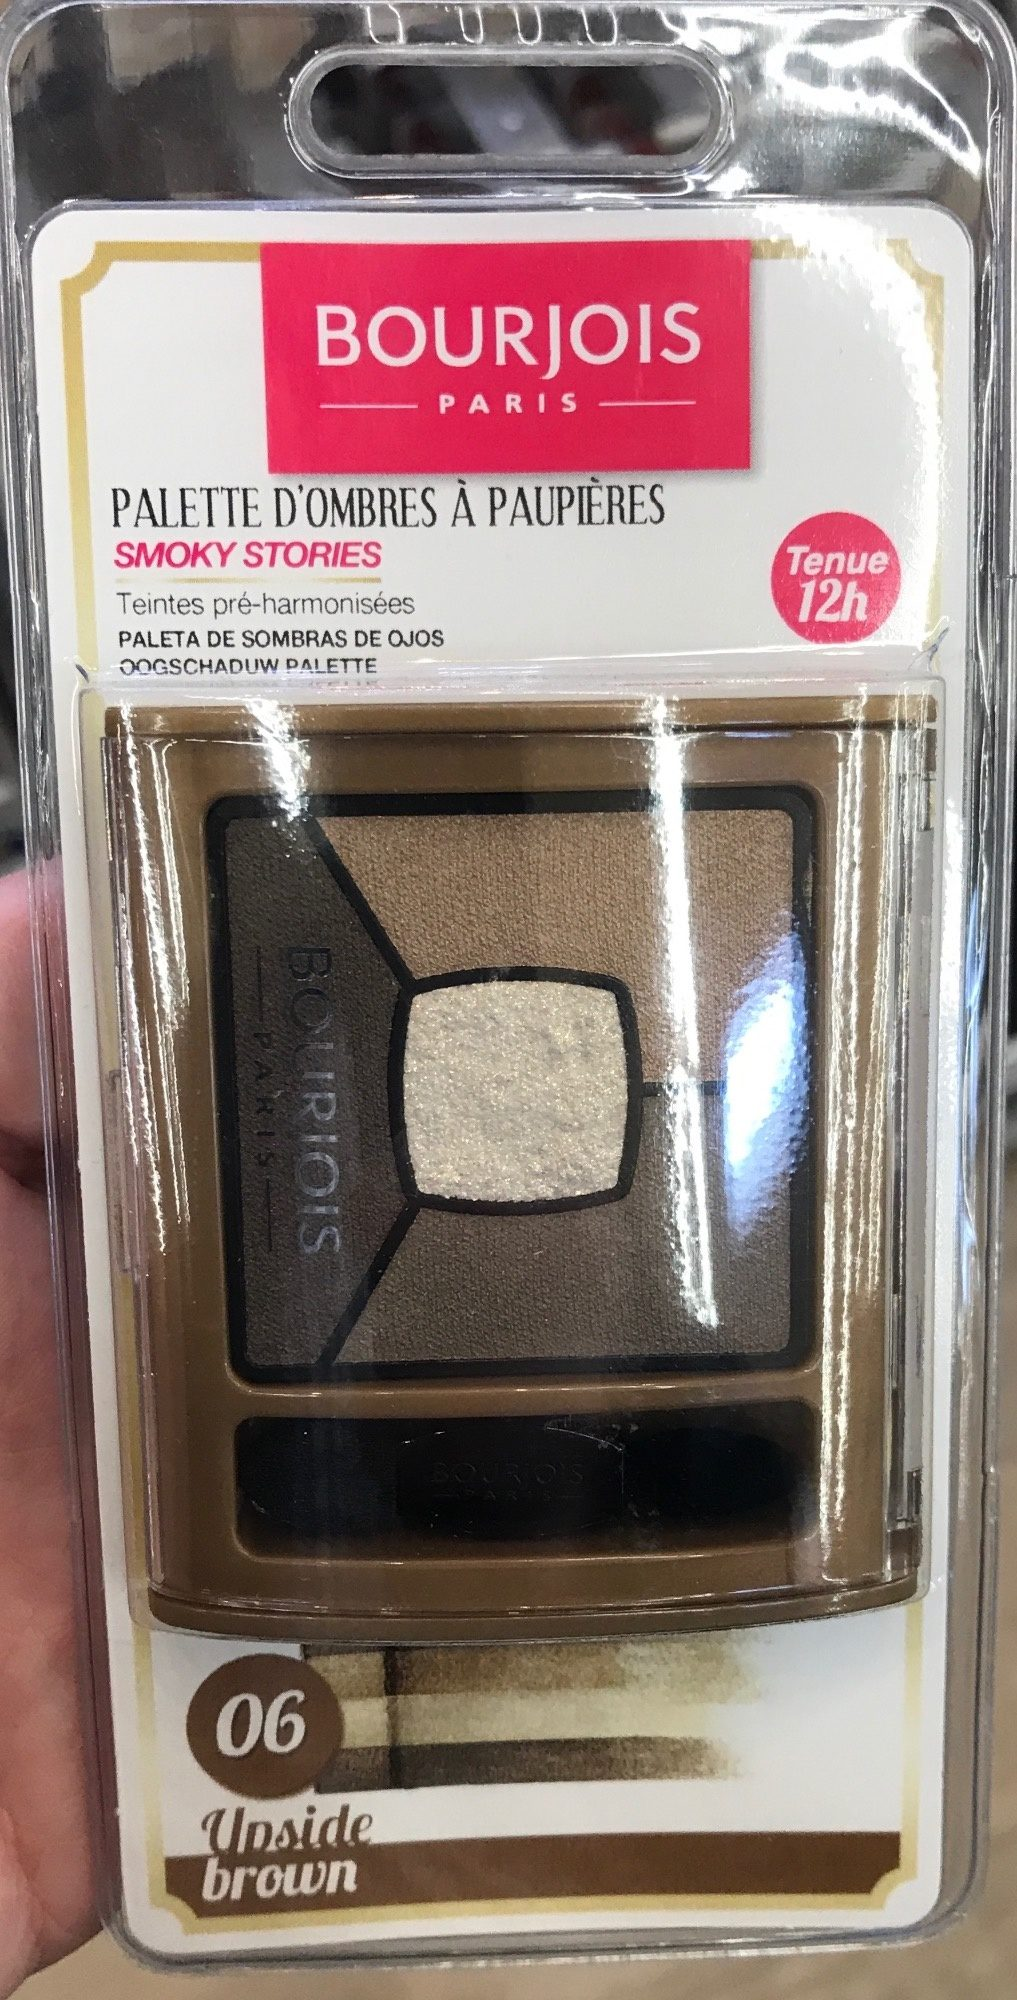 Palette d'ombres à paupières Smoky Stories 12H Upside Brown 6 - Produit - fr